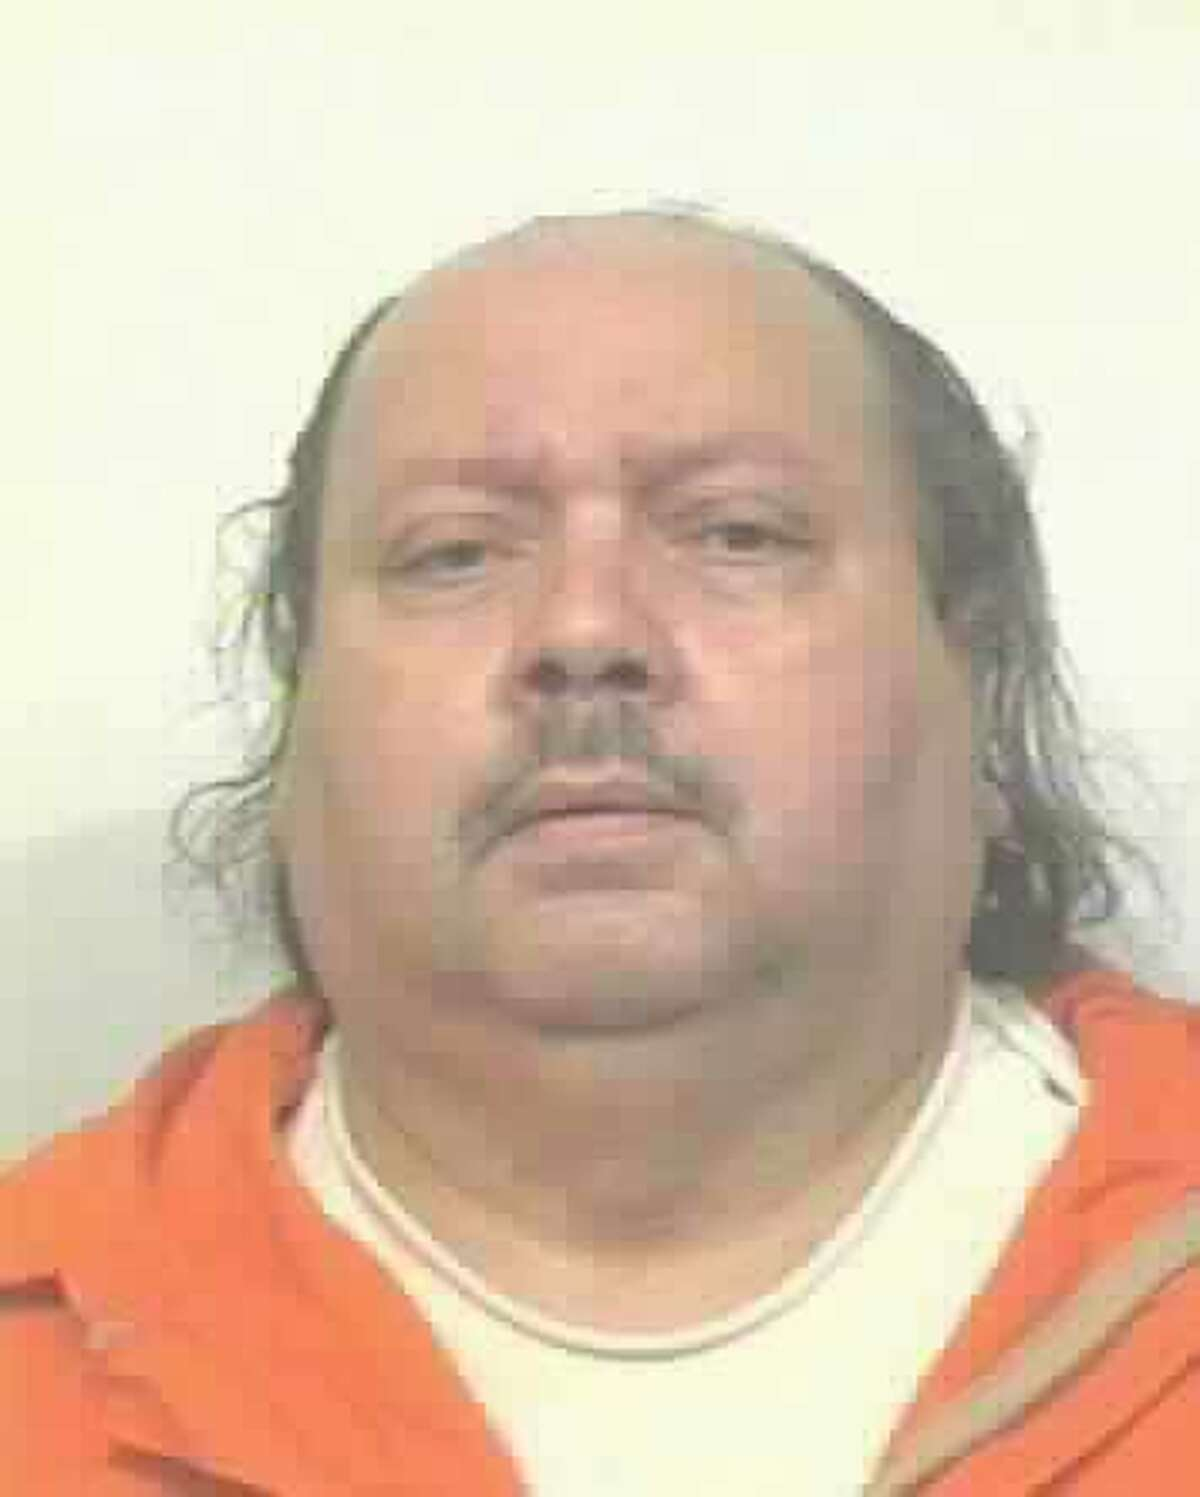 Jose Miranda, shortly before he died in prison. Miranda served 17 months of a 11 year sentence before his death.